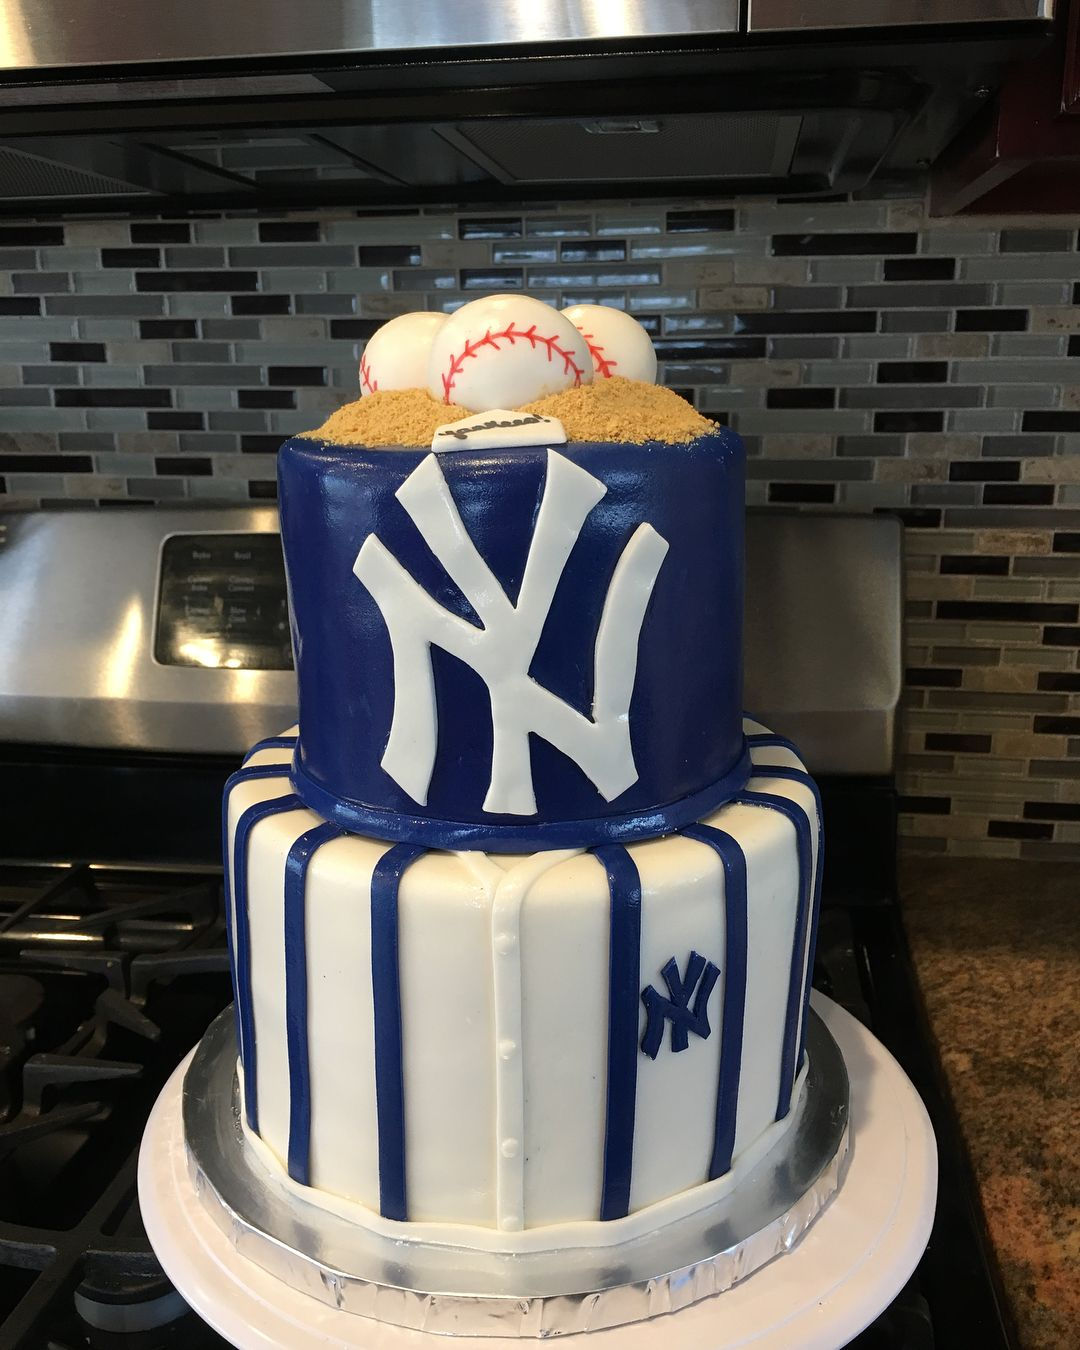 New York Yankees Cake Customcakesbykarina Babylon Yankees Newyork Newyorkyankeescake Longisland Instagood Yankee Cake Cake Yankees Birthday Party